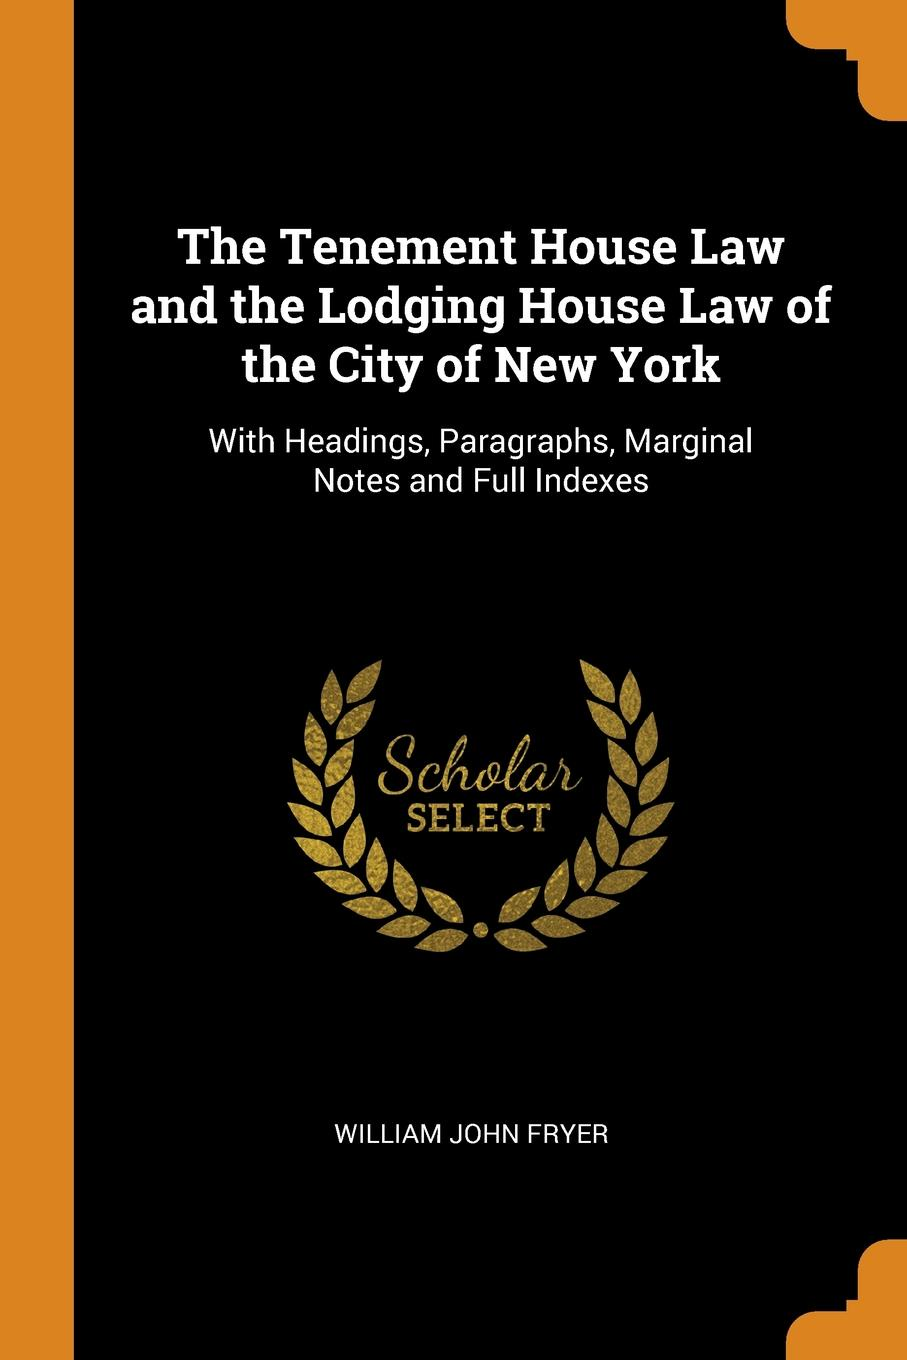 The Tenement House Law and the Lodging House Law of the City of New York. With Headings, Paragraphs, Marginal Notes and Full Indexes This work has been selected by scholars as being culturally important...